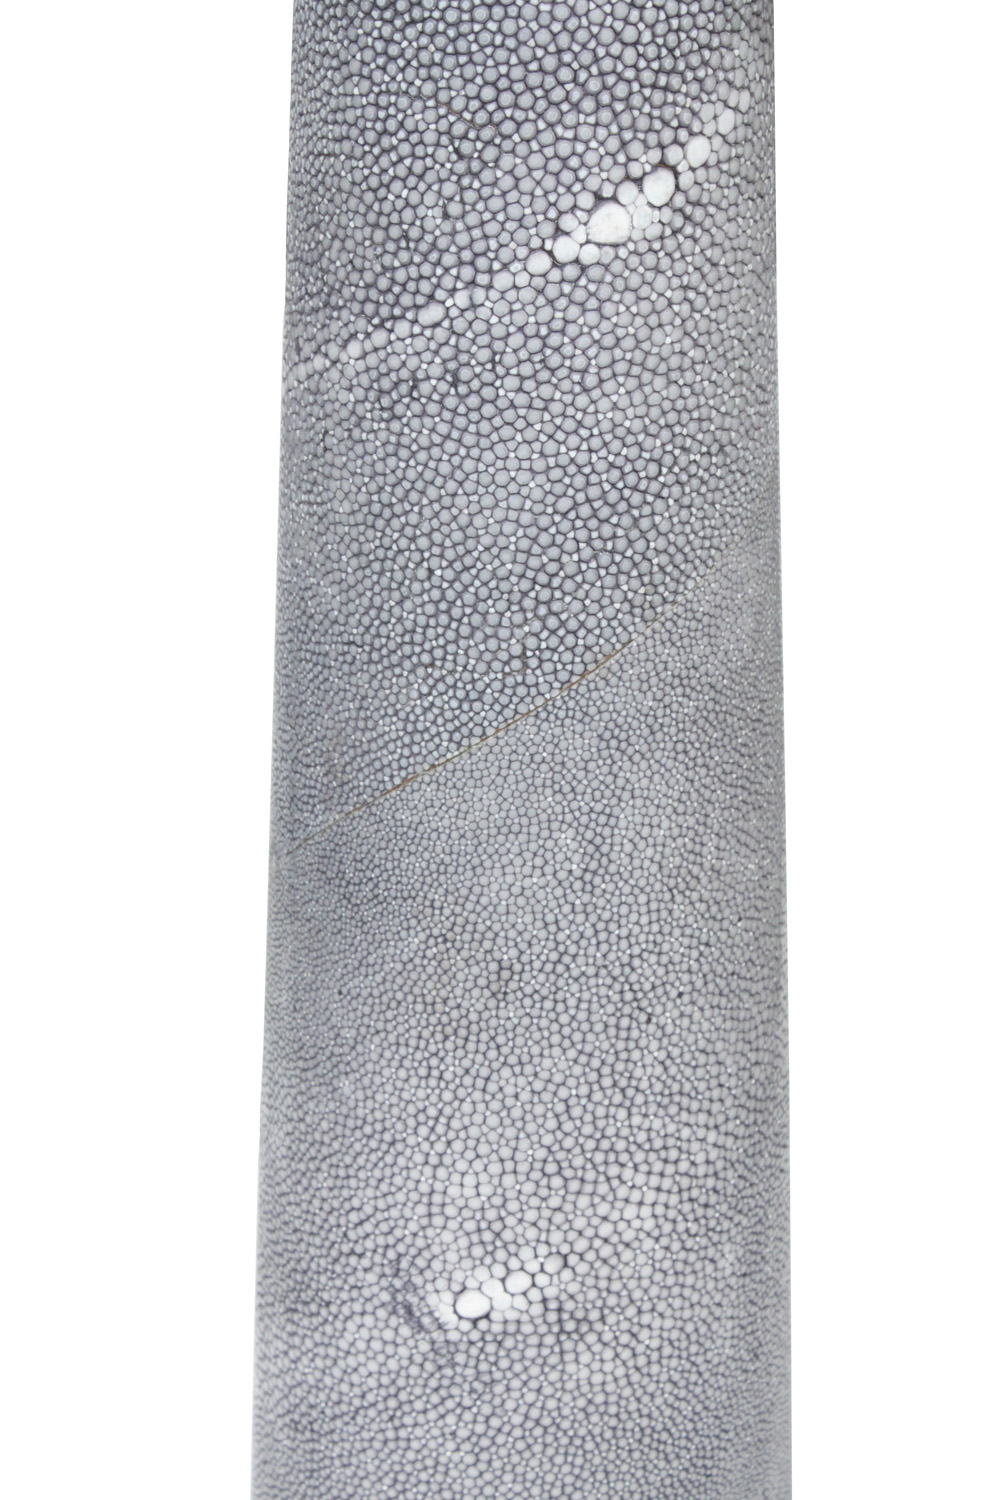 Springer 150 Lighthouse shagreen  tablelamps327 detail3 hires - Copy.jpg